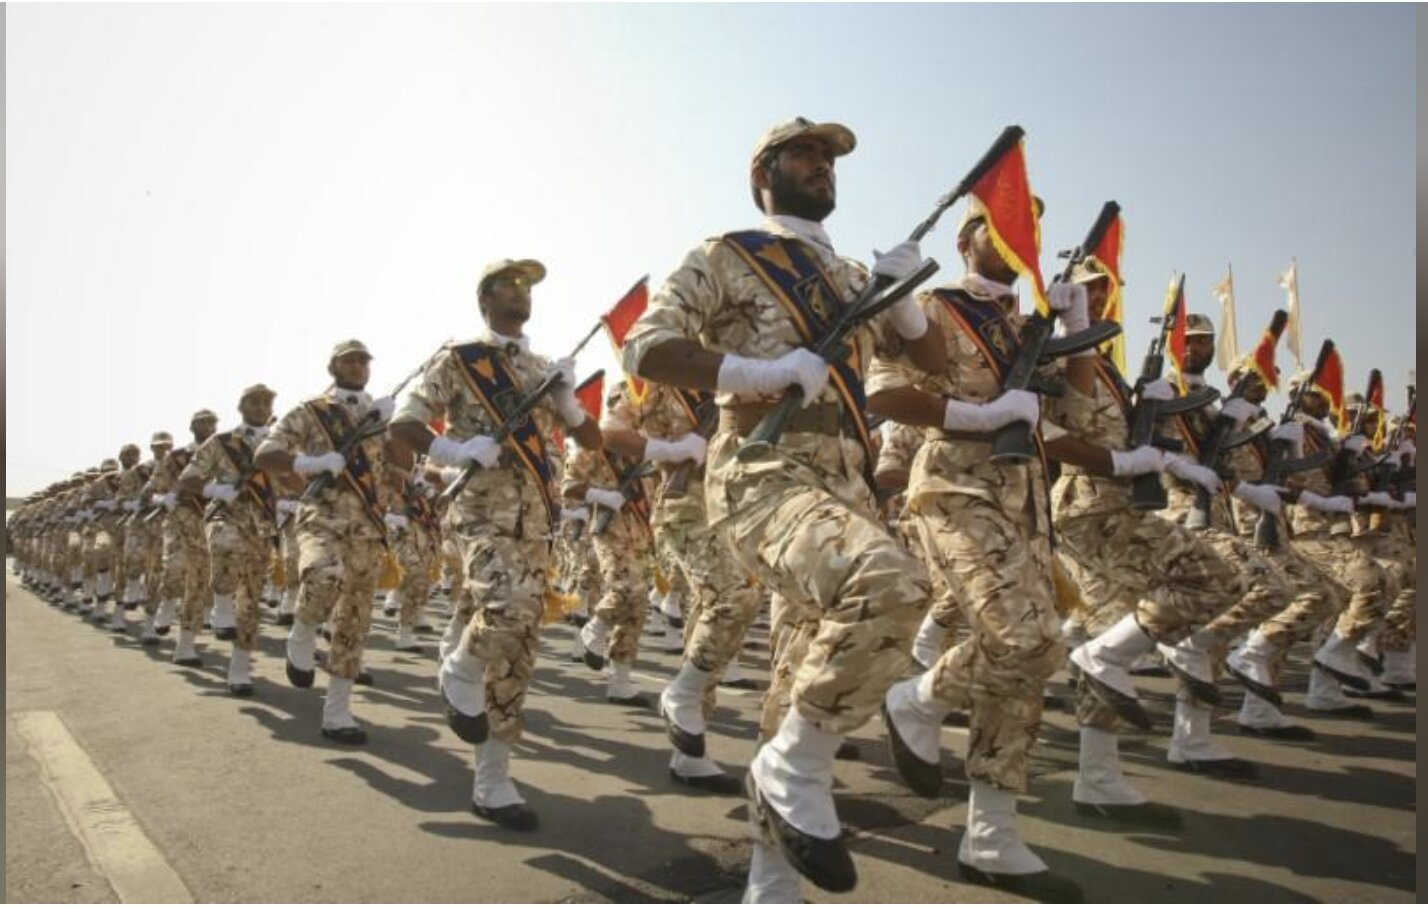 In unprecedented move, U.S. names Iran's Revolutionary Guards terrorist group